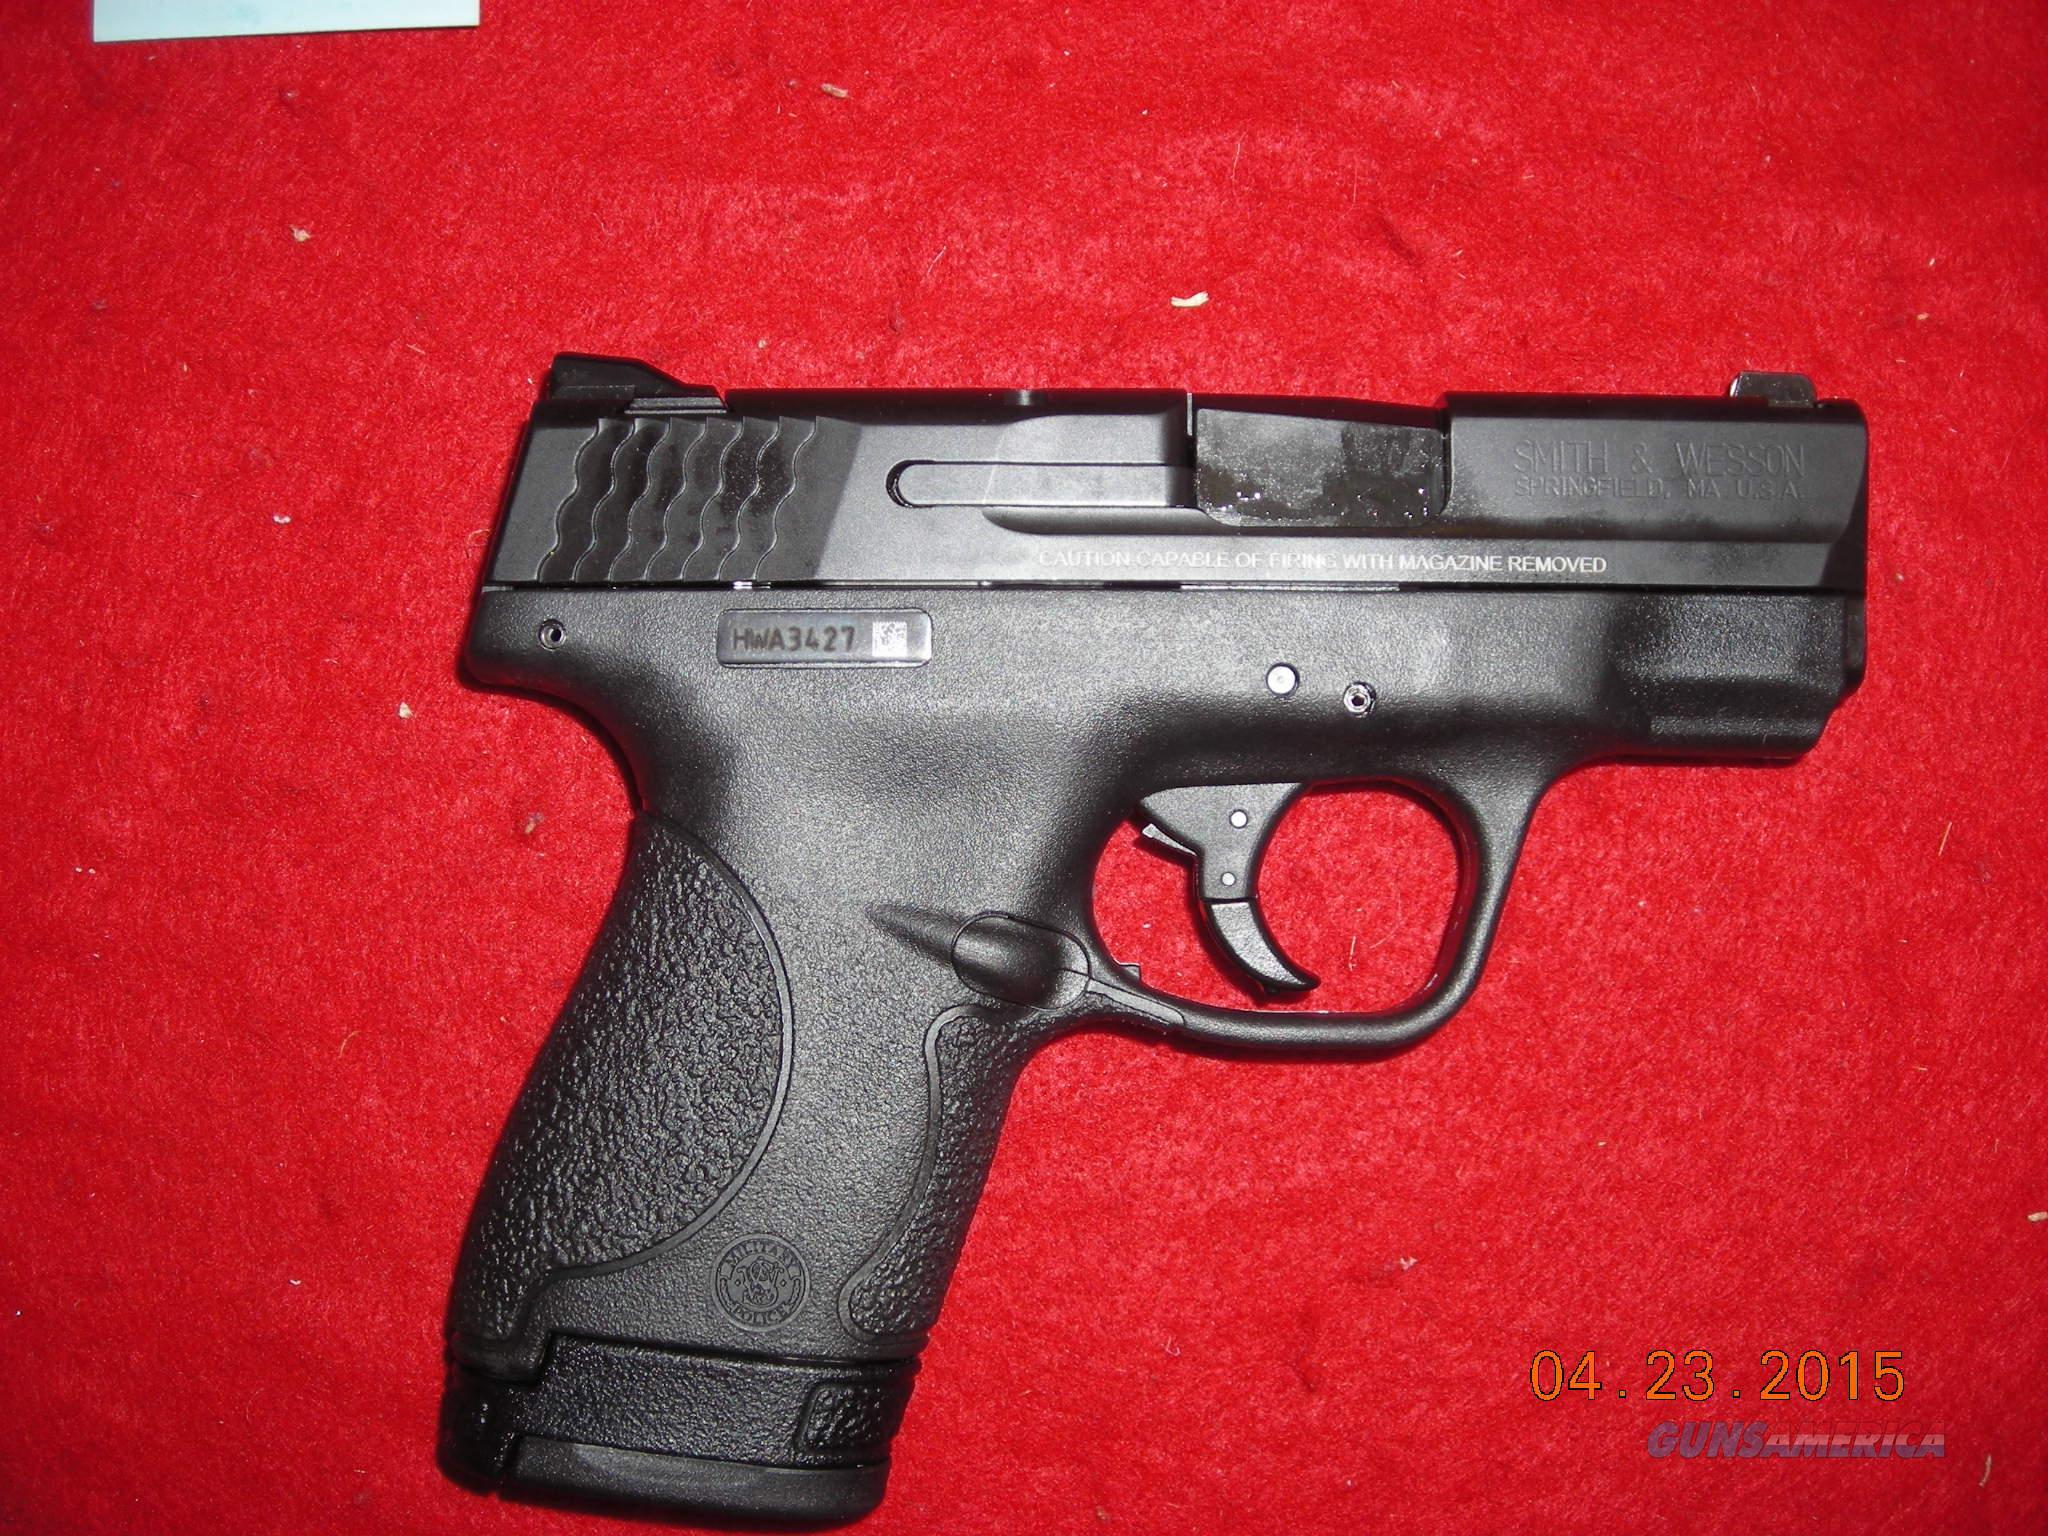 SMITH AND WESSON M&P SHIELD 9MM  Guns > Pistols > Smith & Wesson Pistols - Autos > Polymer Frame